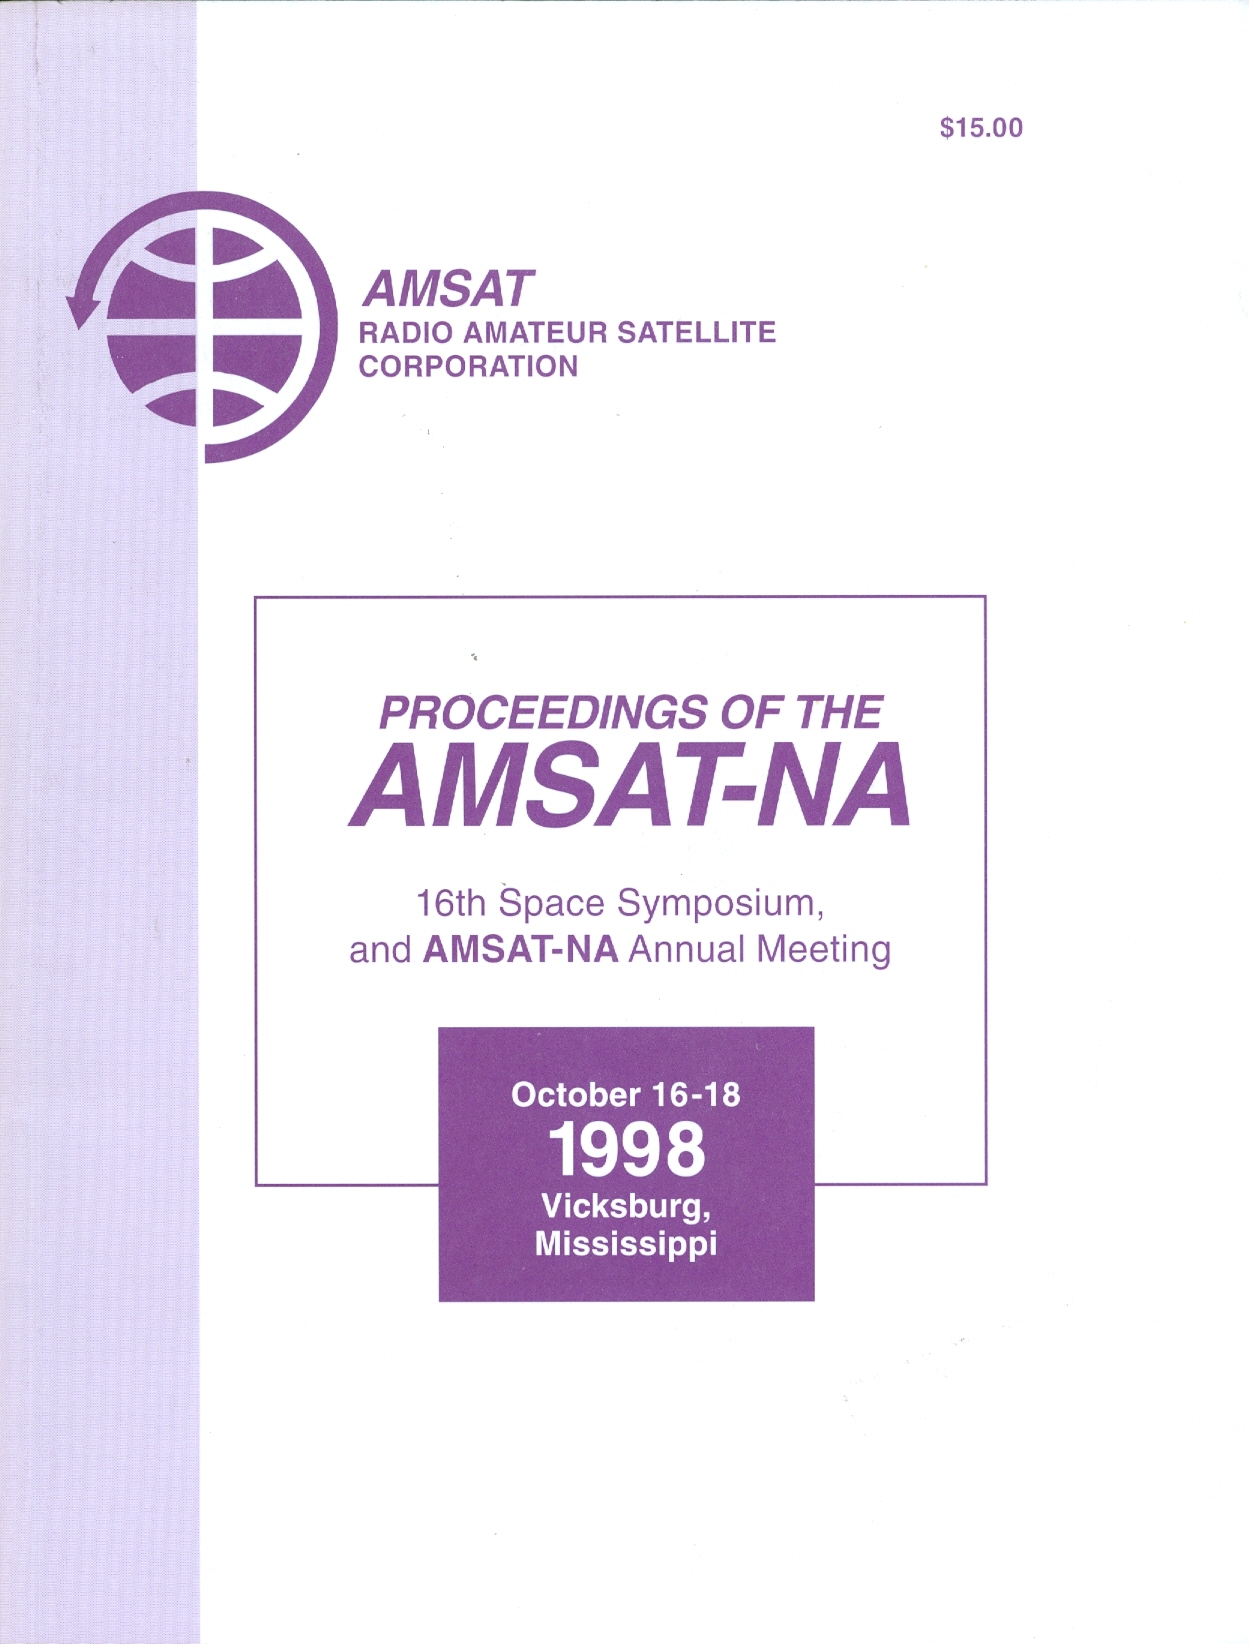 Proceedings of the AMSAT-NA 16th Space Symposium, and AMSAT Annual Meeting